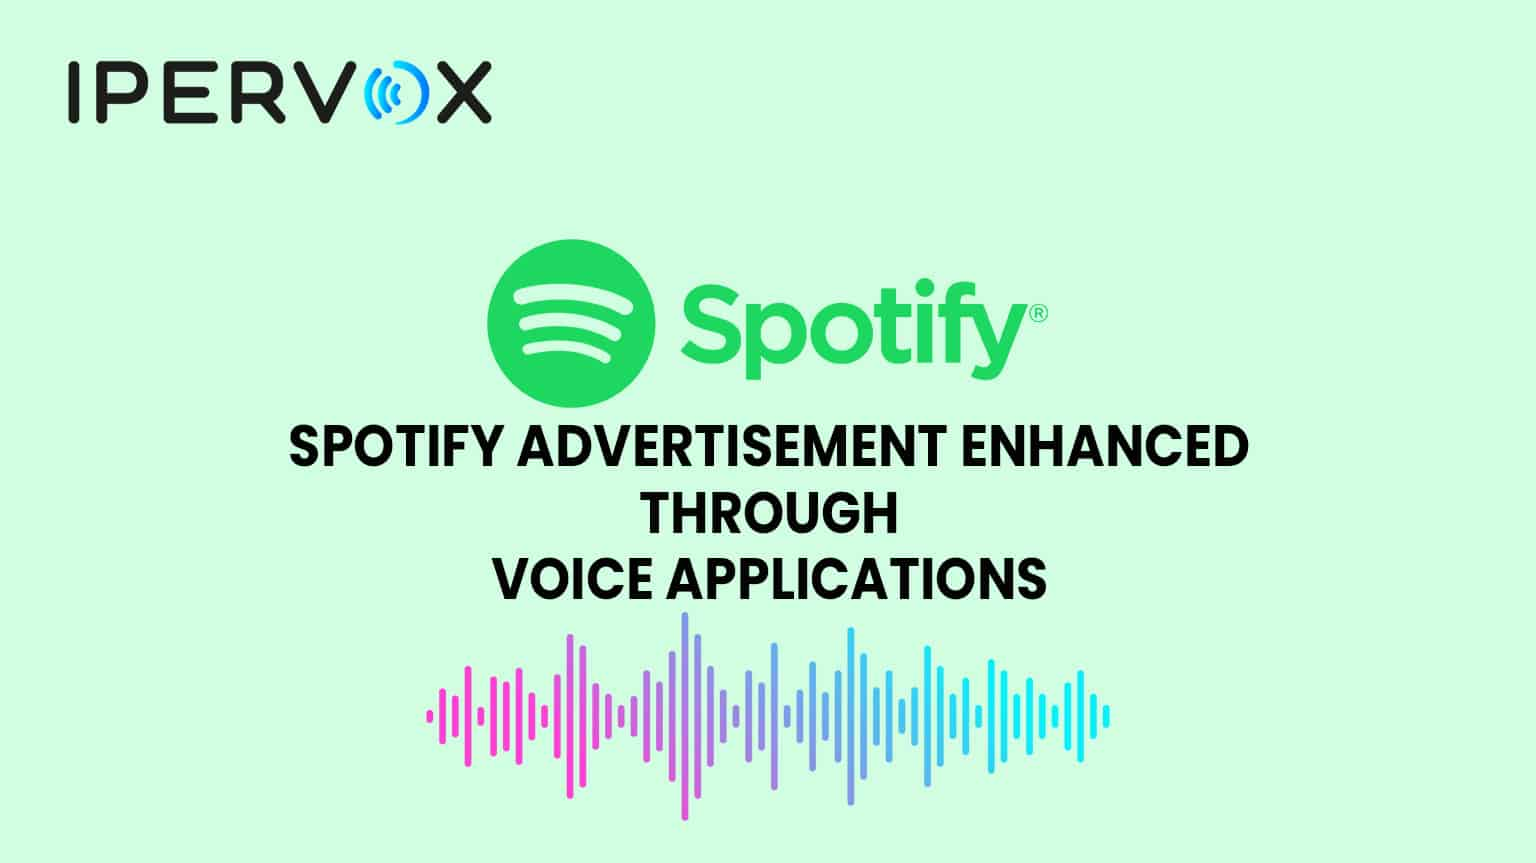 How to build the Best Performing Spotify Advertising Campaigns with Voice Applications